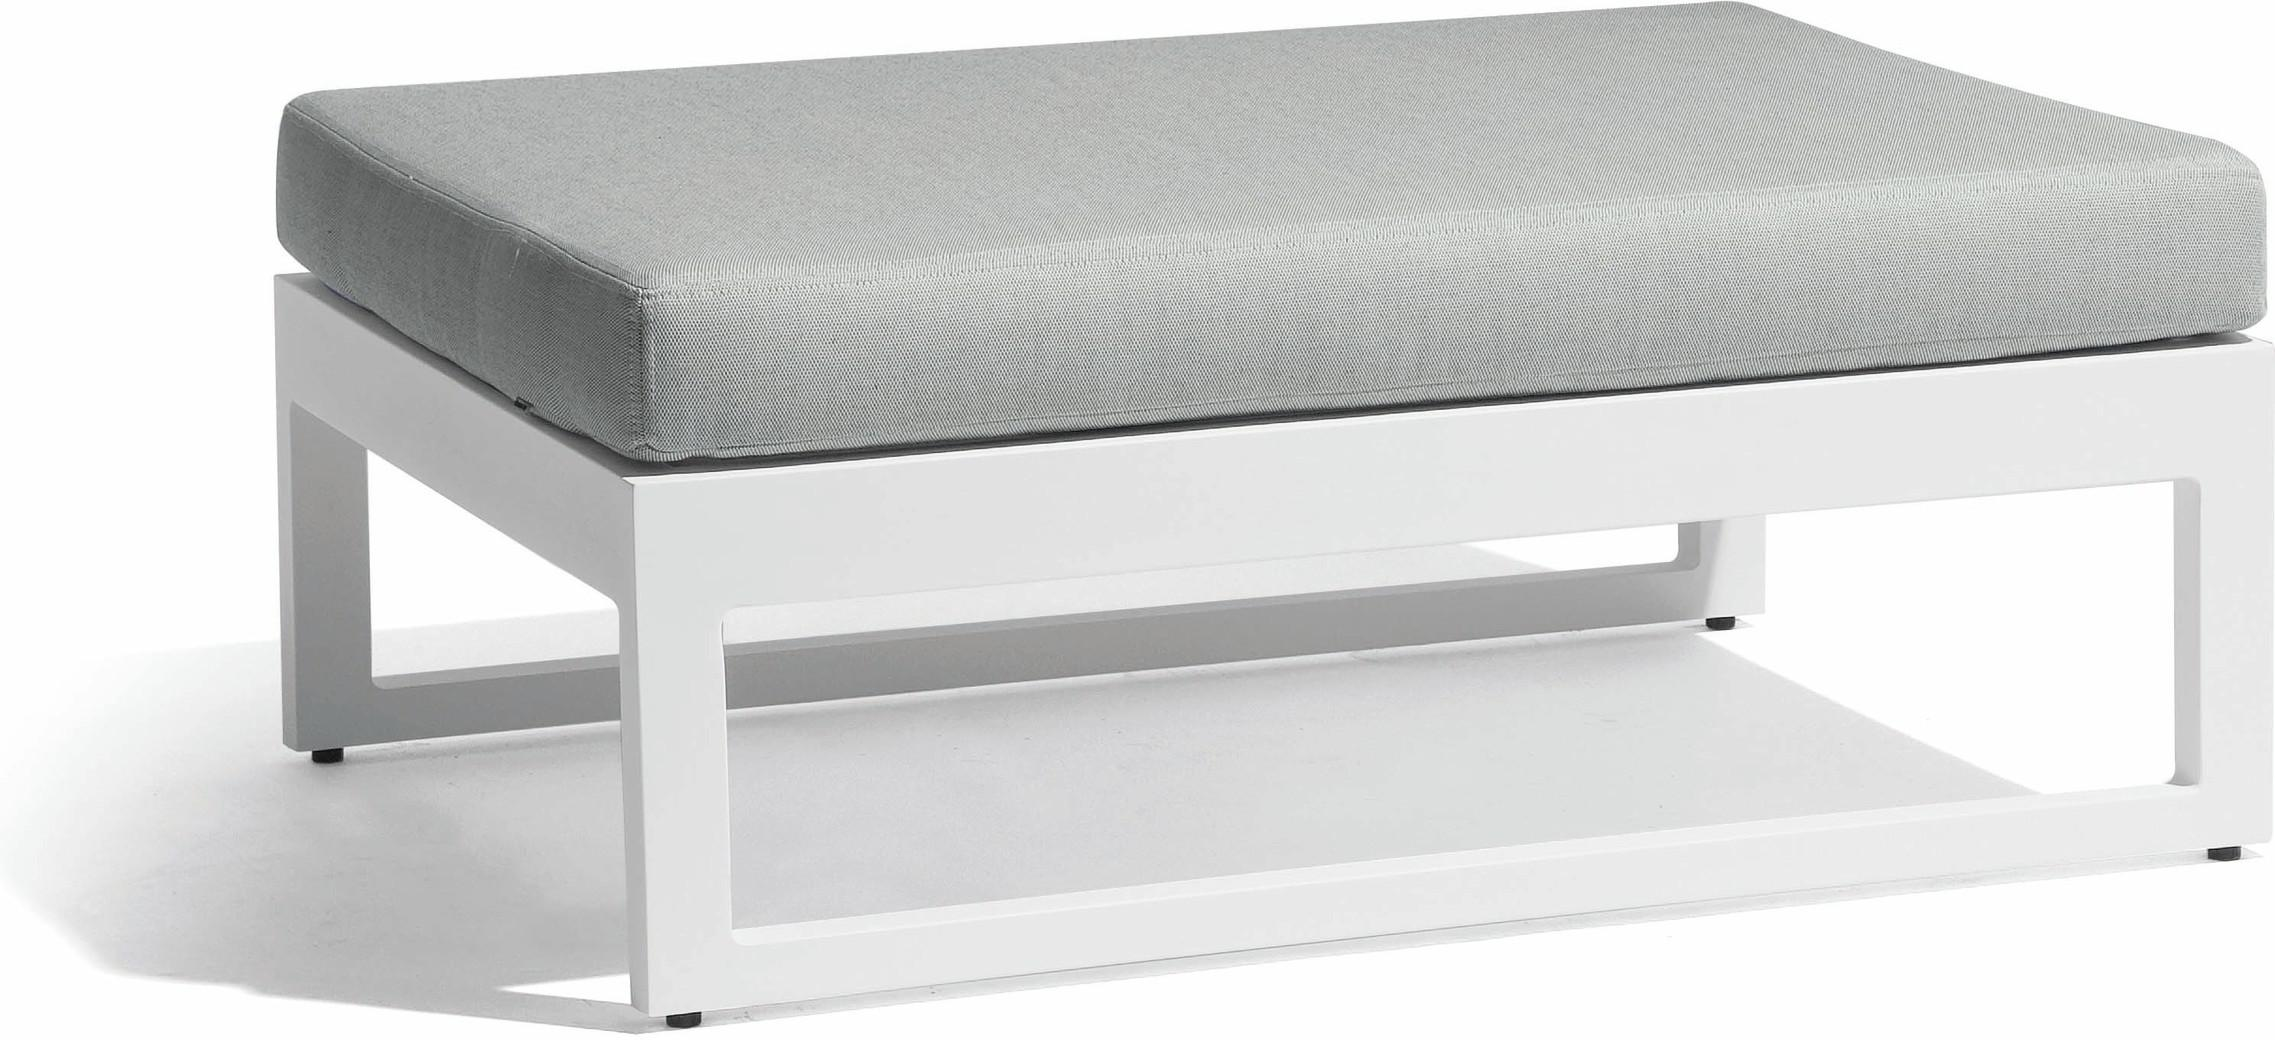 Fuse large footstool - white - GLW